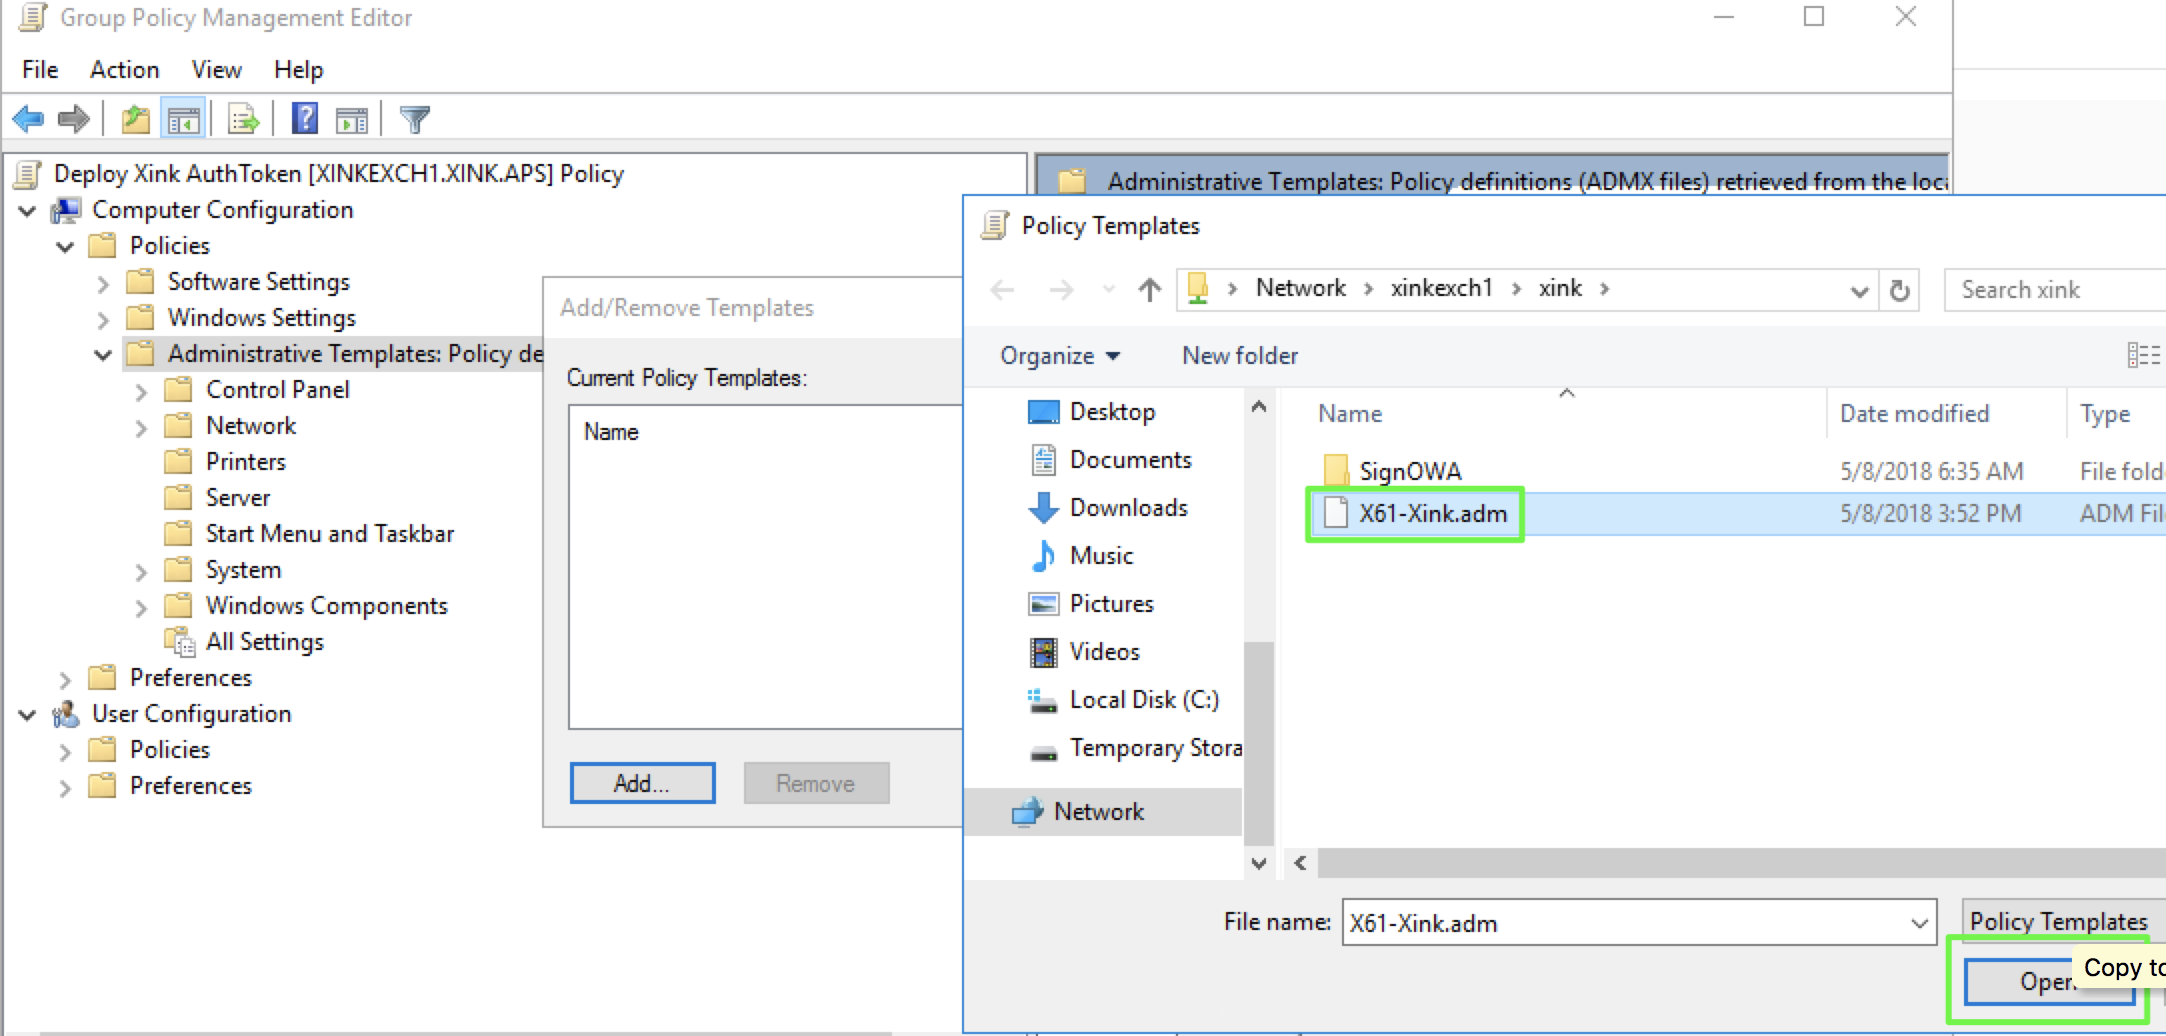 It Pro Deploy Xink Adm File Via Gpo Template Xink Token Id